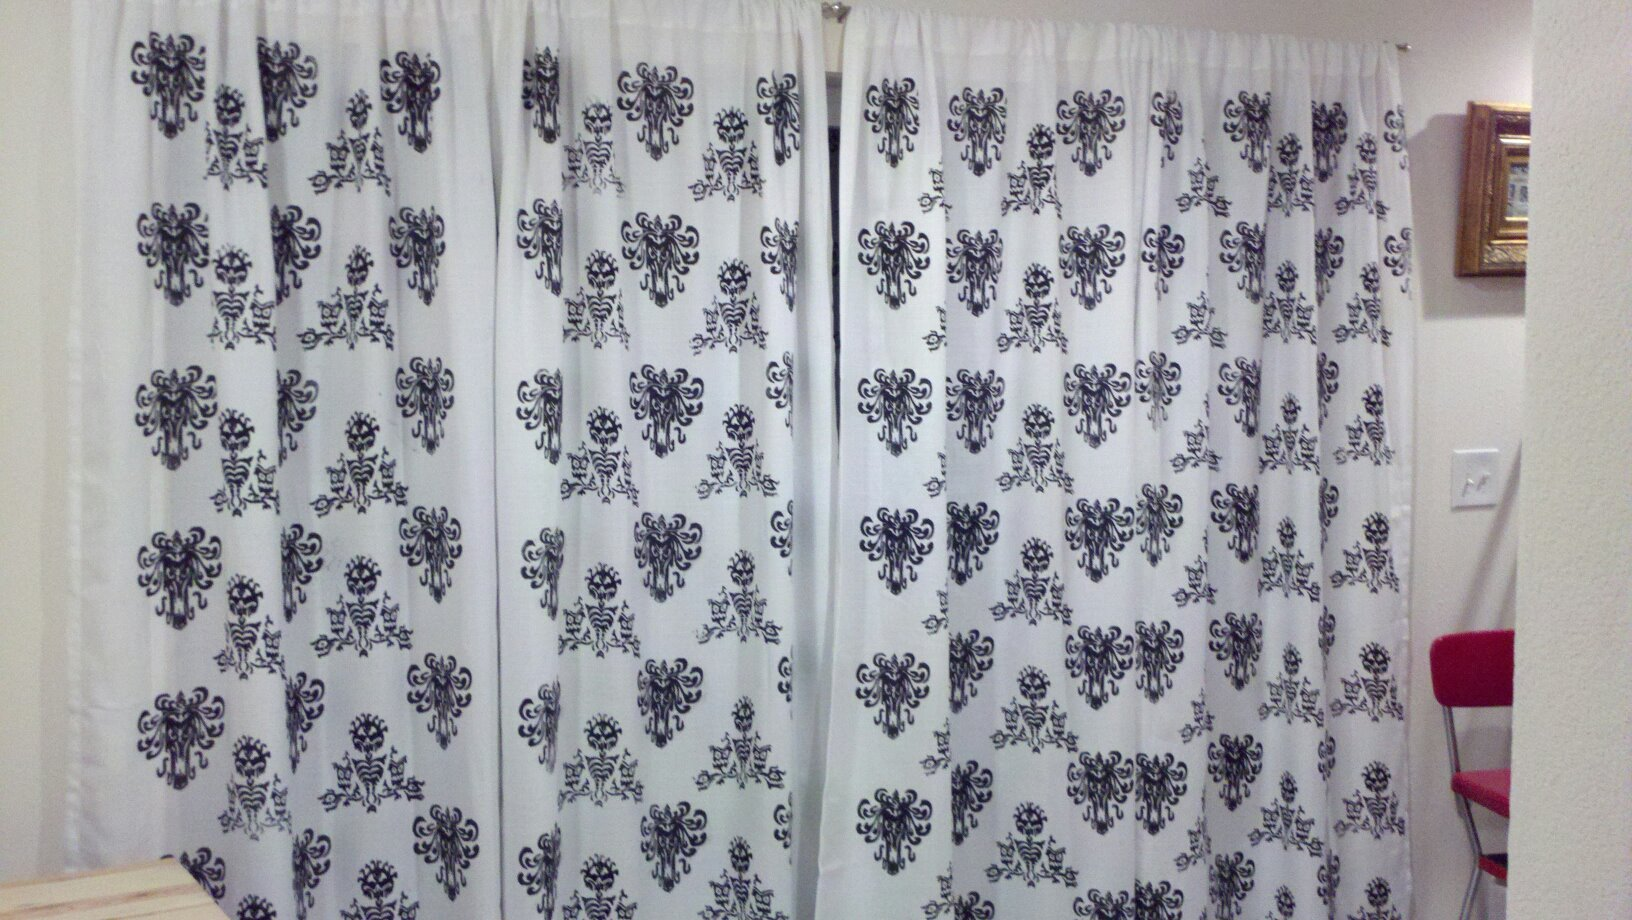 Finished Haunted Mansion Curtains! - Not too shabby, if I say so myself.